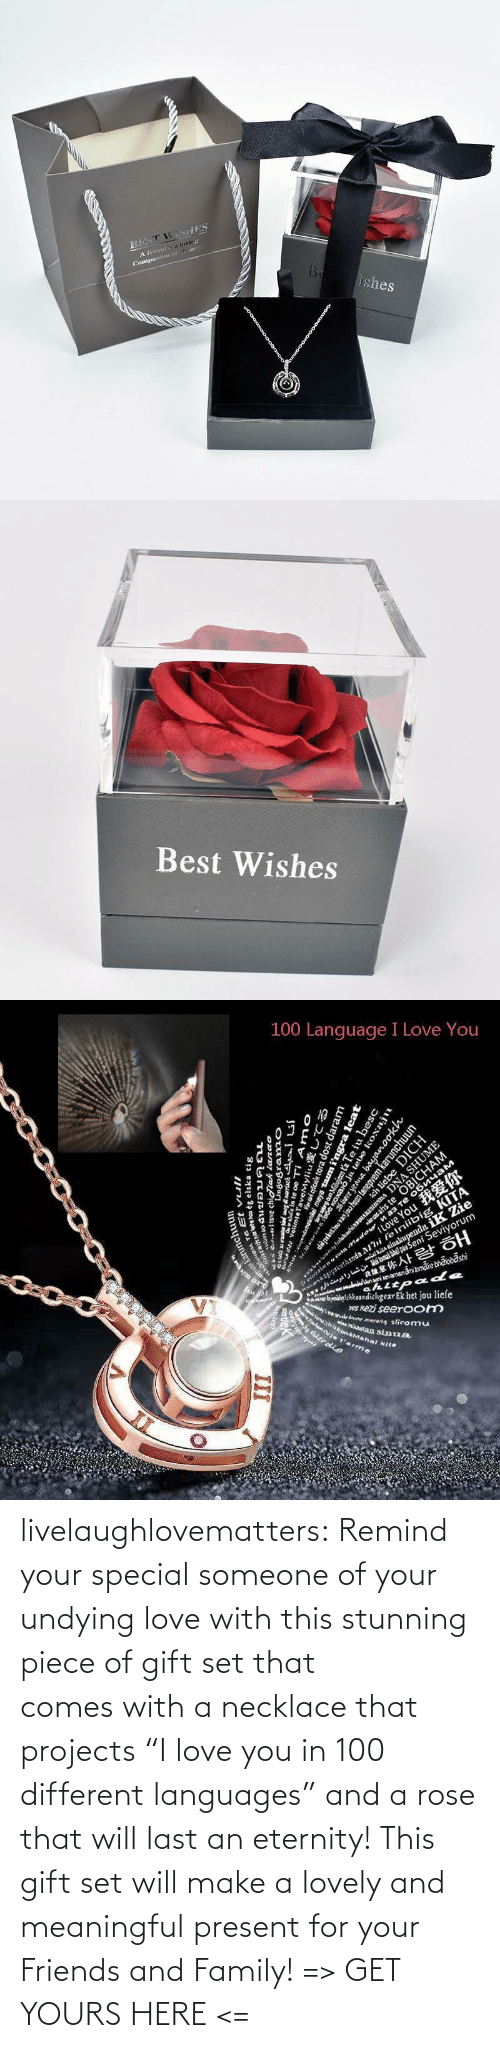 "Friends: livelaughlovematters:  Remind your special someone of your undying love with this stunning piece of gift set that comes with a necklace that projects ""I love you in 100 different languages"" and a rose that will last an eternity! This gift set will make a lovely and meaningful present for your Friends and Family! => GET YOURS HERE <="